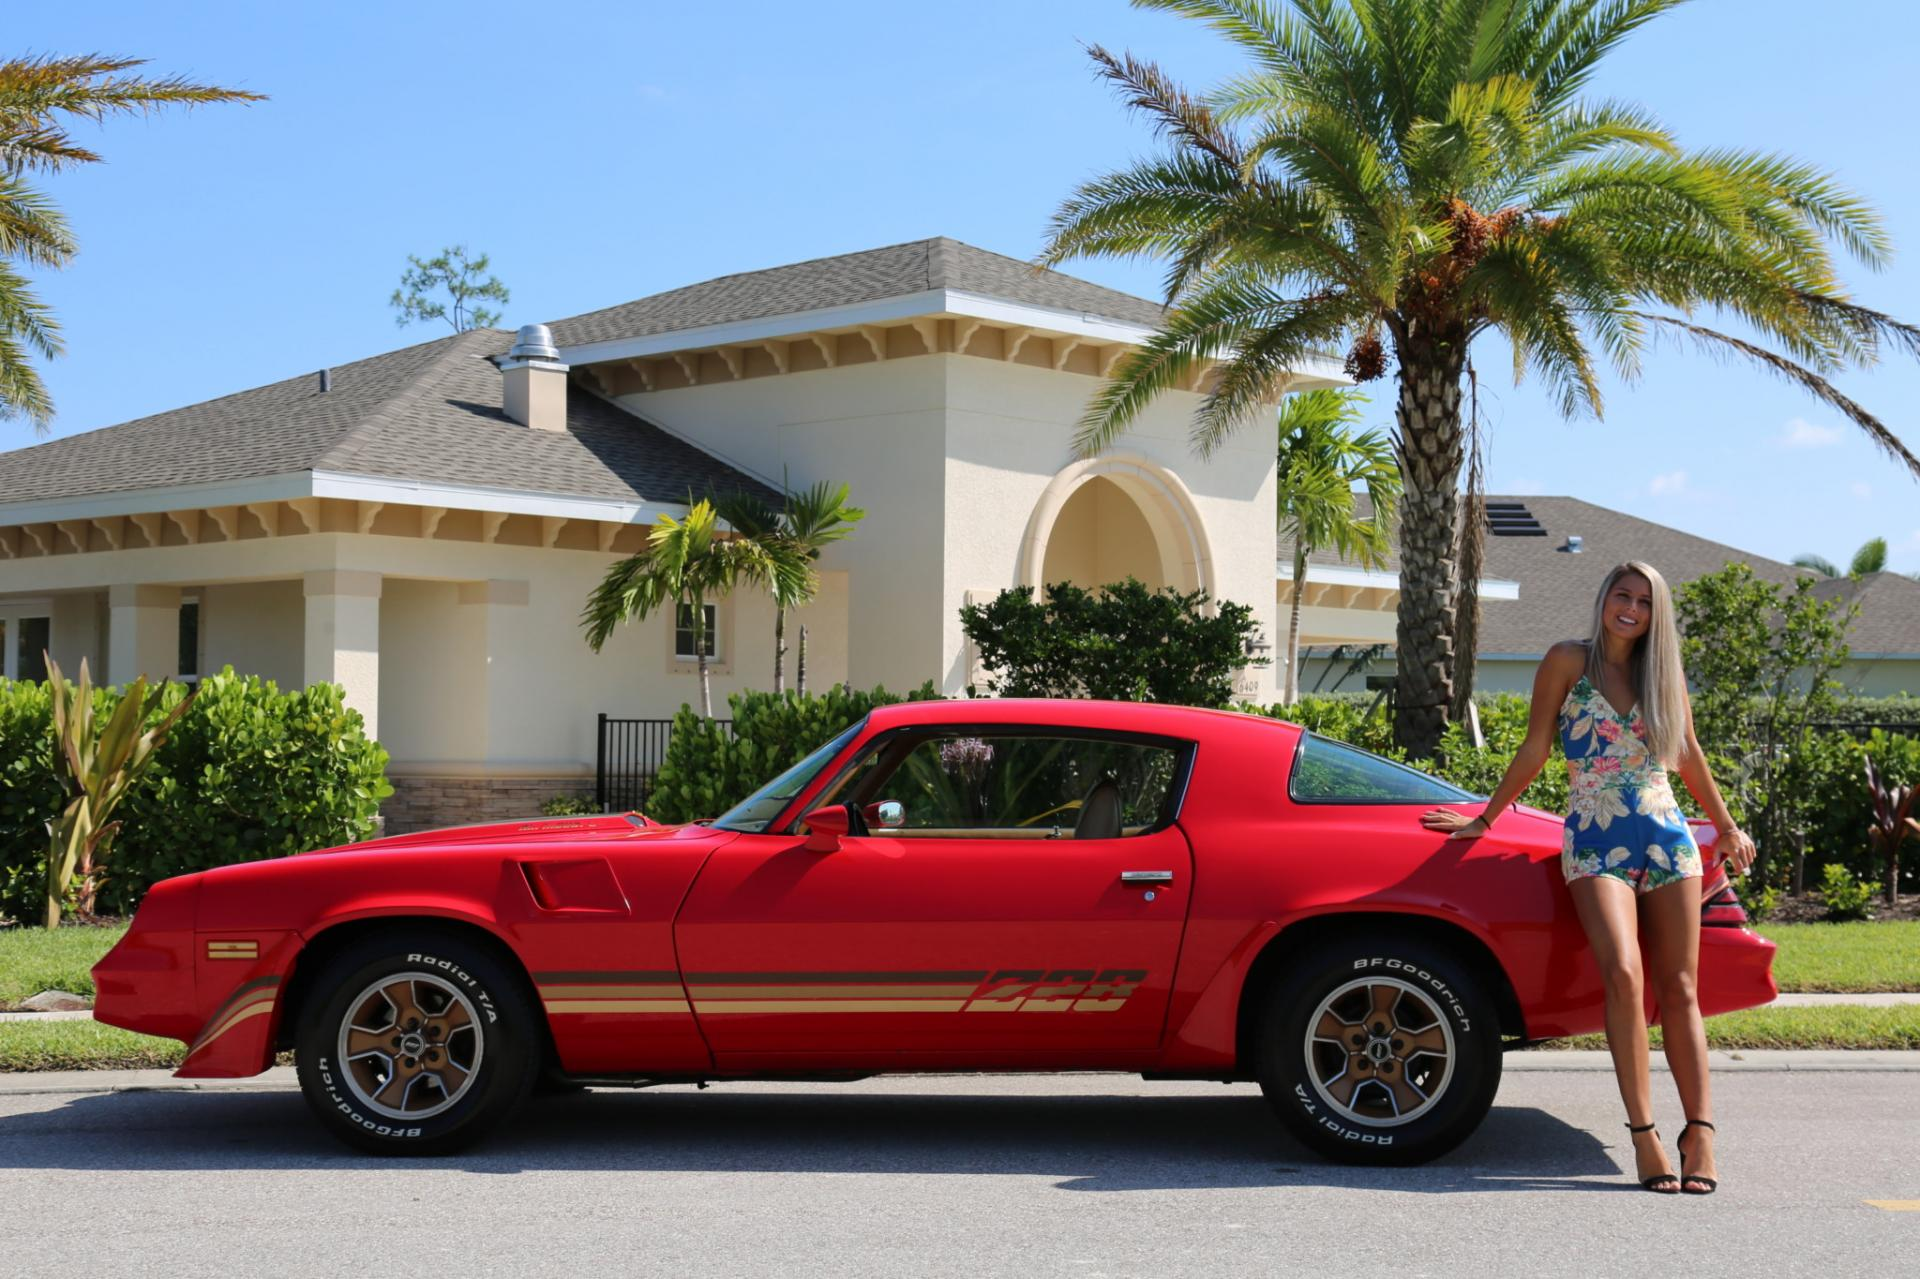 Used 1980 Chevrolet Camaro Z/28 for sale Sold at Muscle Cars for Sale Inc. in Fort Myers FL 33912 4